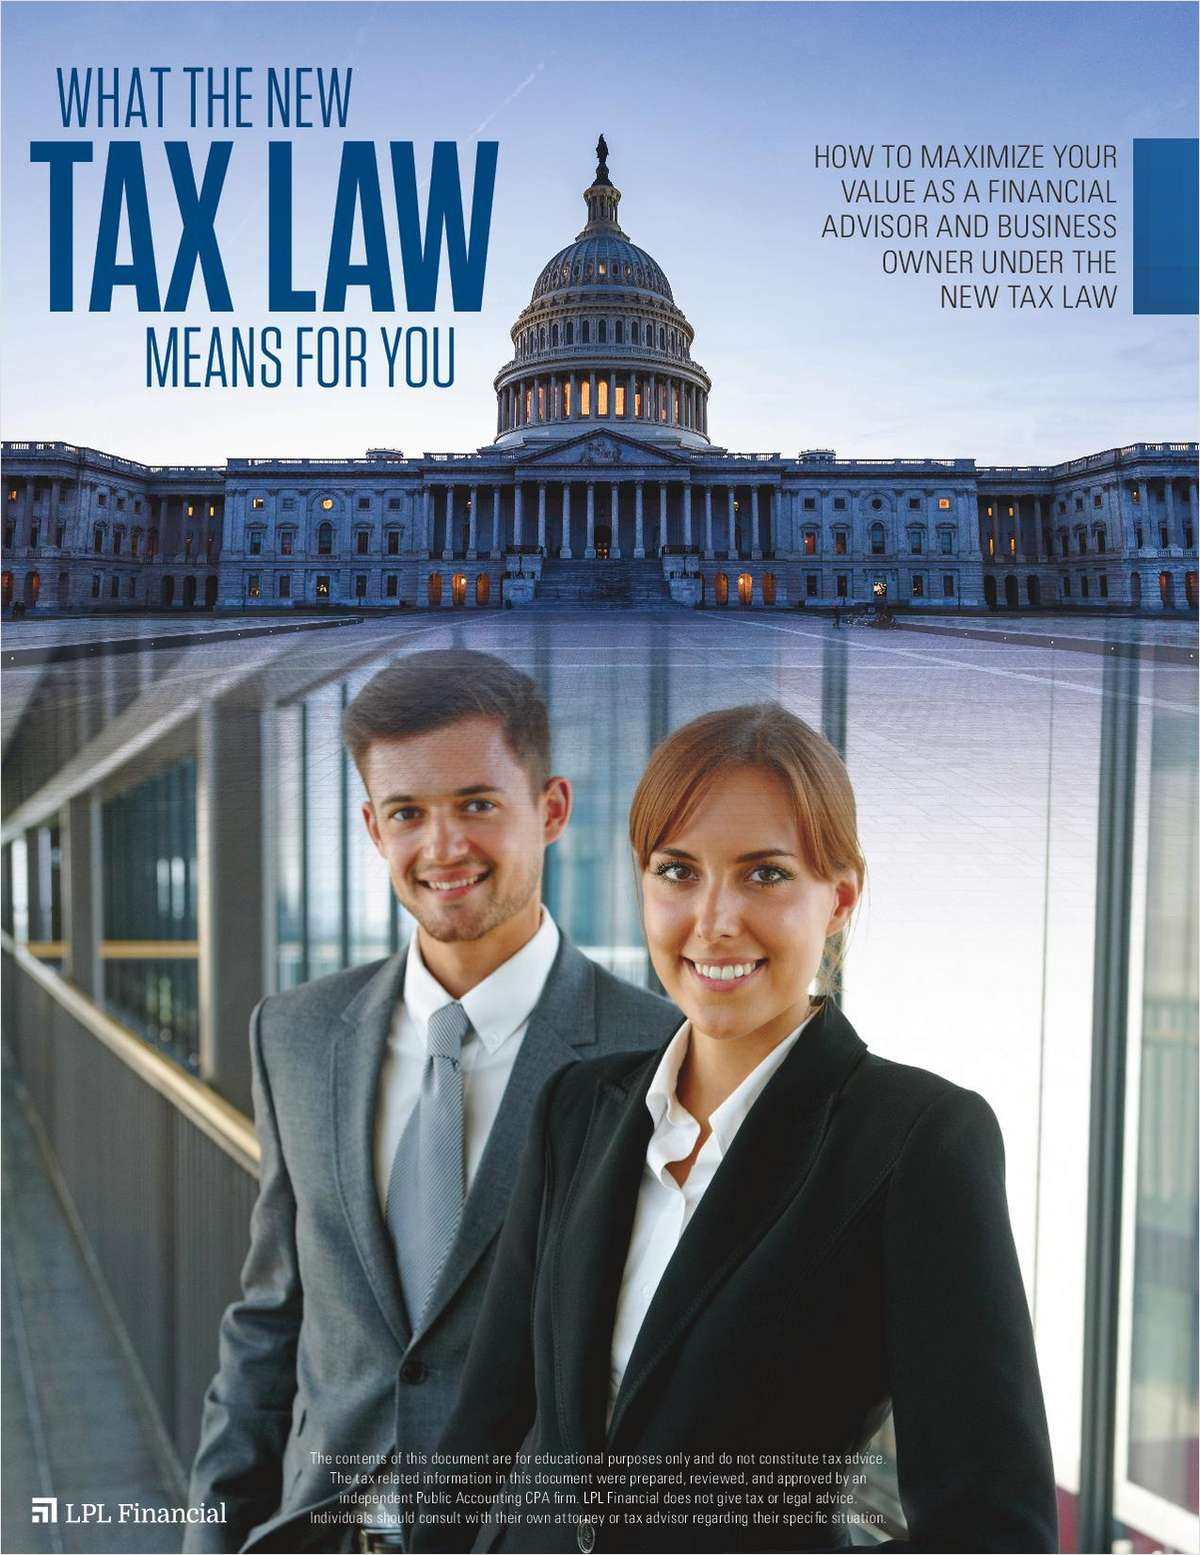 How to Maximize Your Value as a Financial Advisor and Business Owner Under the New Tax Law